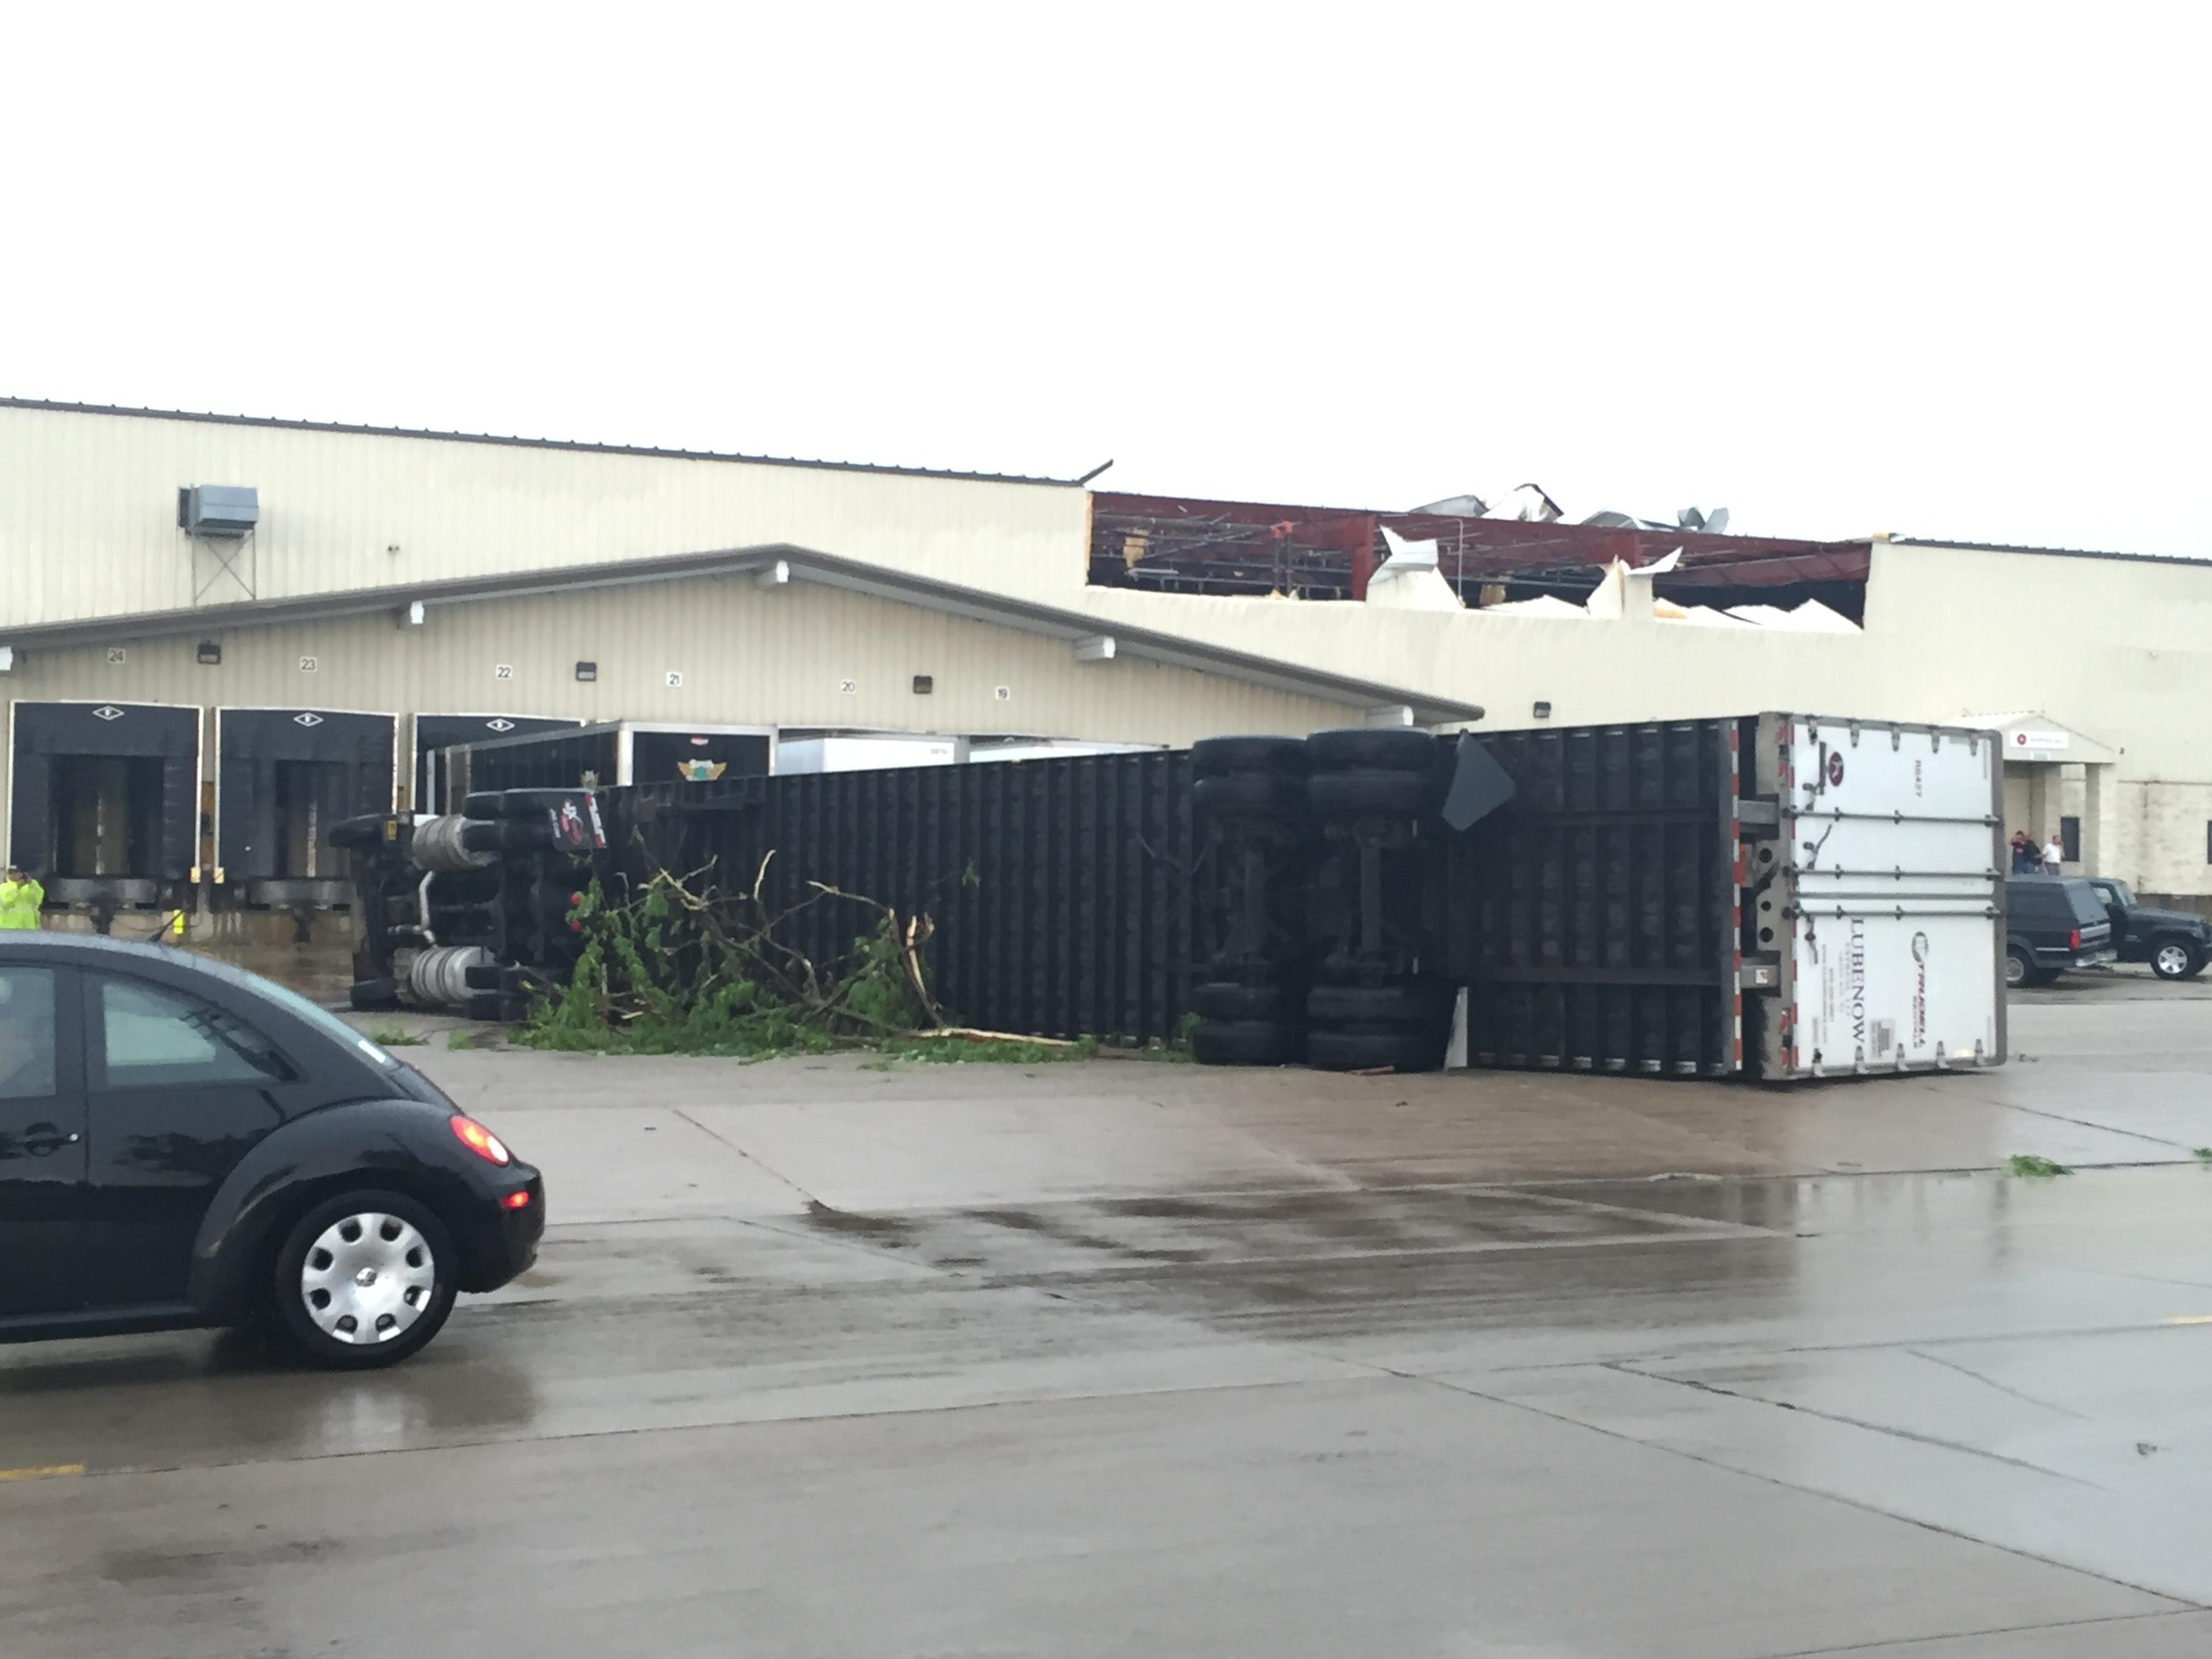 Semi is tipped on its side at Appvion warehouse in Appleton, June 14, 2017. (WLUK/Alex Ronallo)